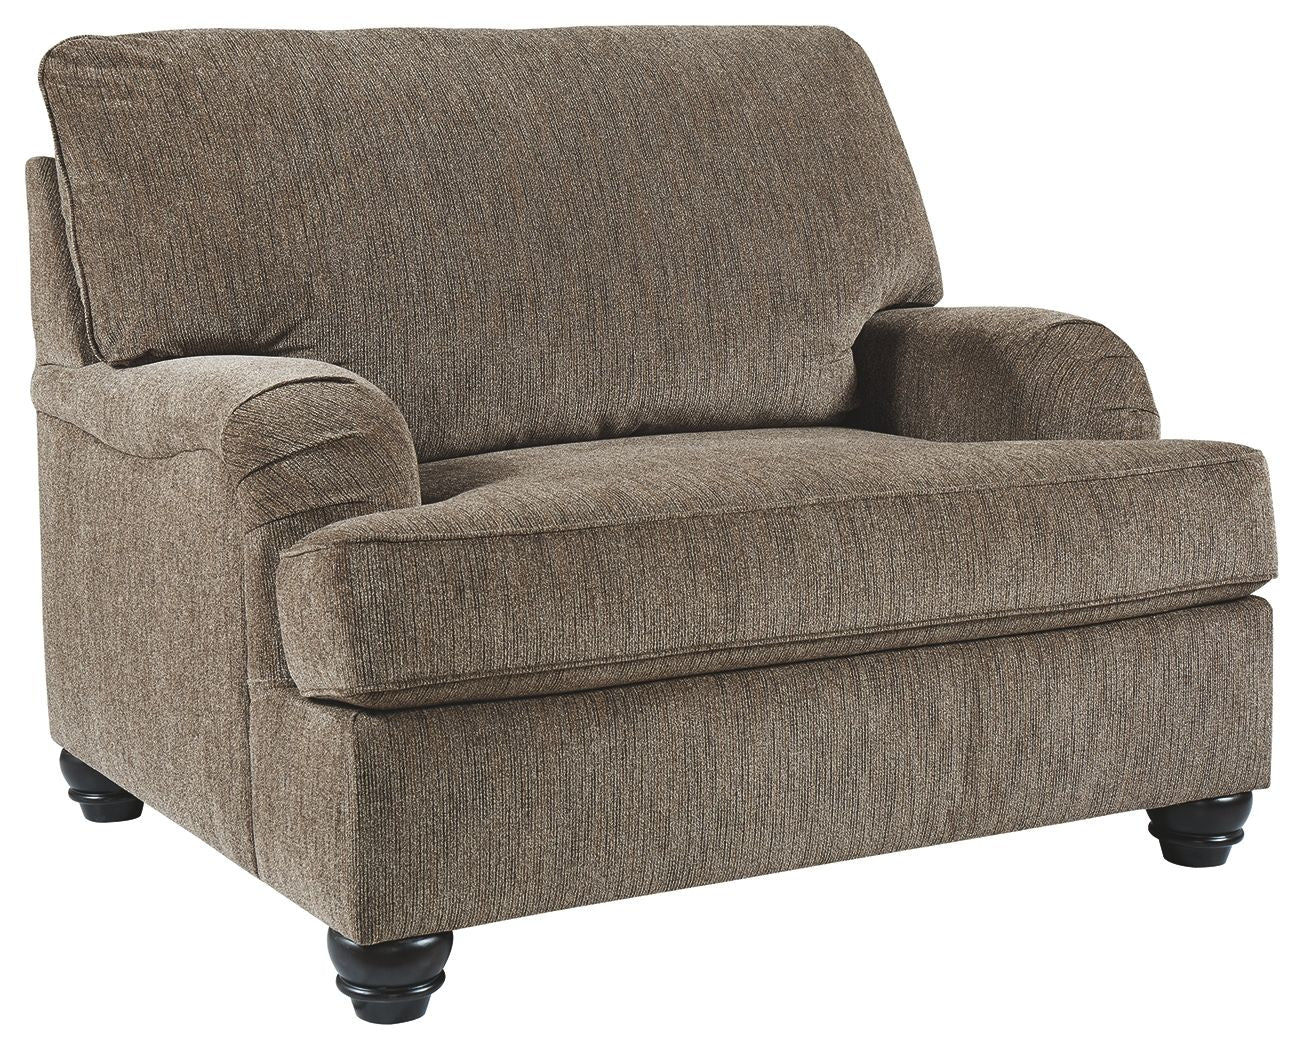 Braemar Oversized Chair | Calgary's Furniture Store